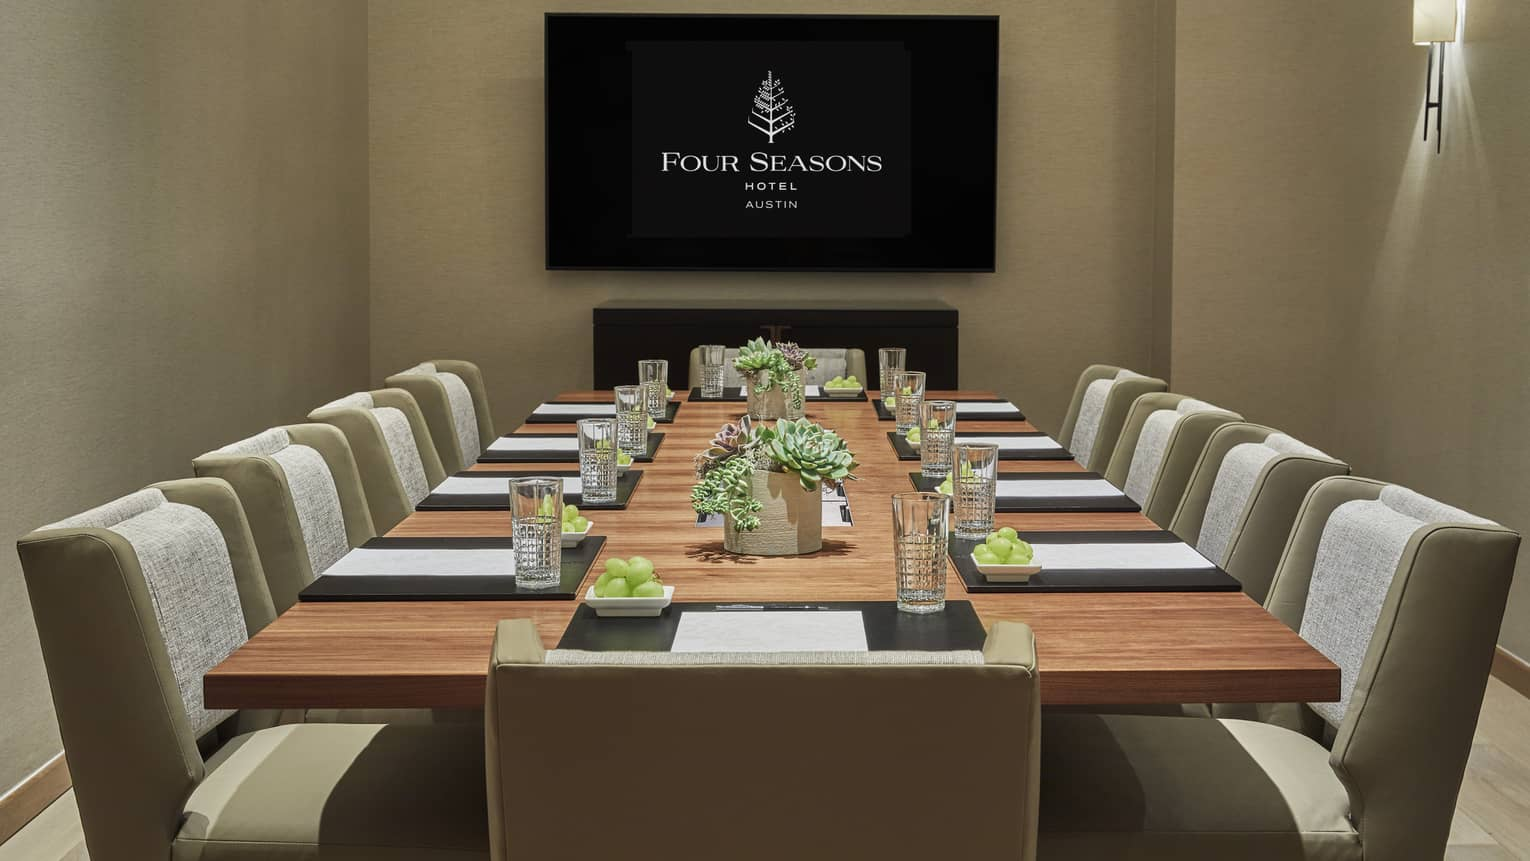 Bouldin Creek meeting room with long boardroom table, screen with Four Seasons logo